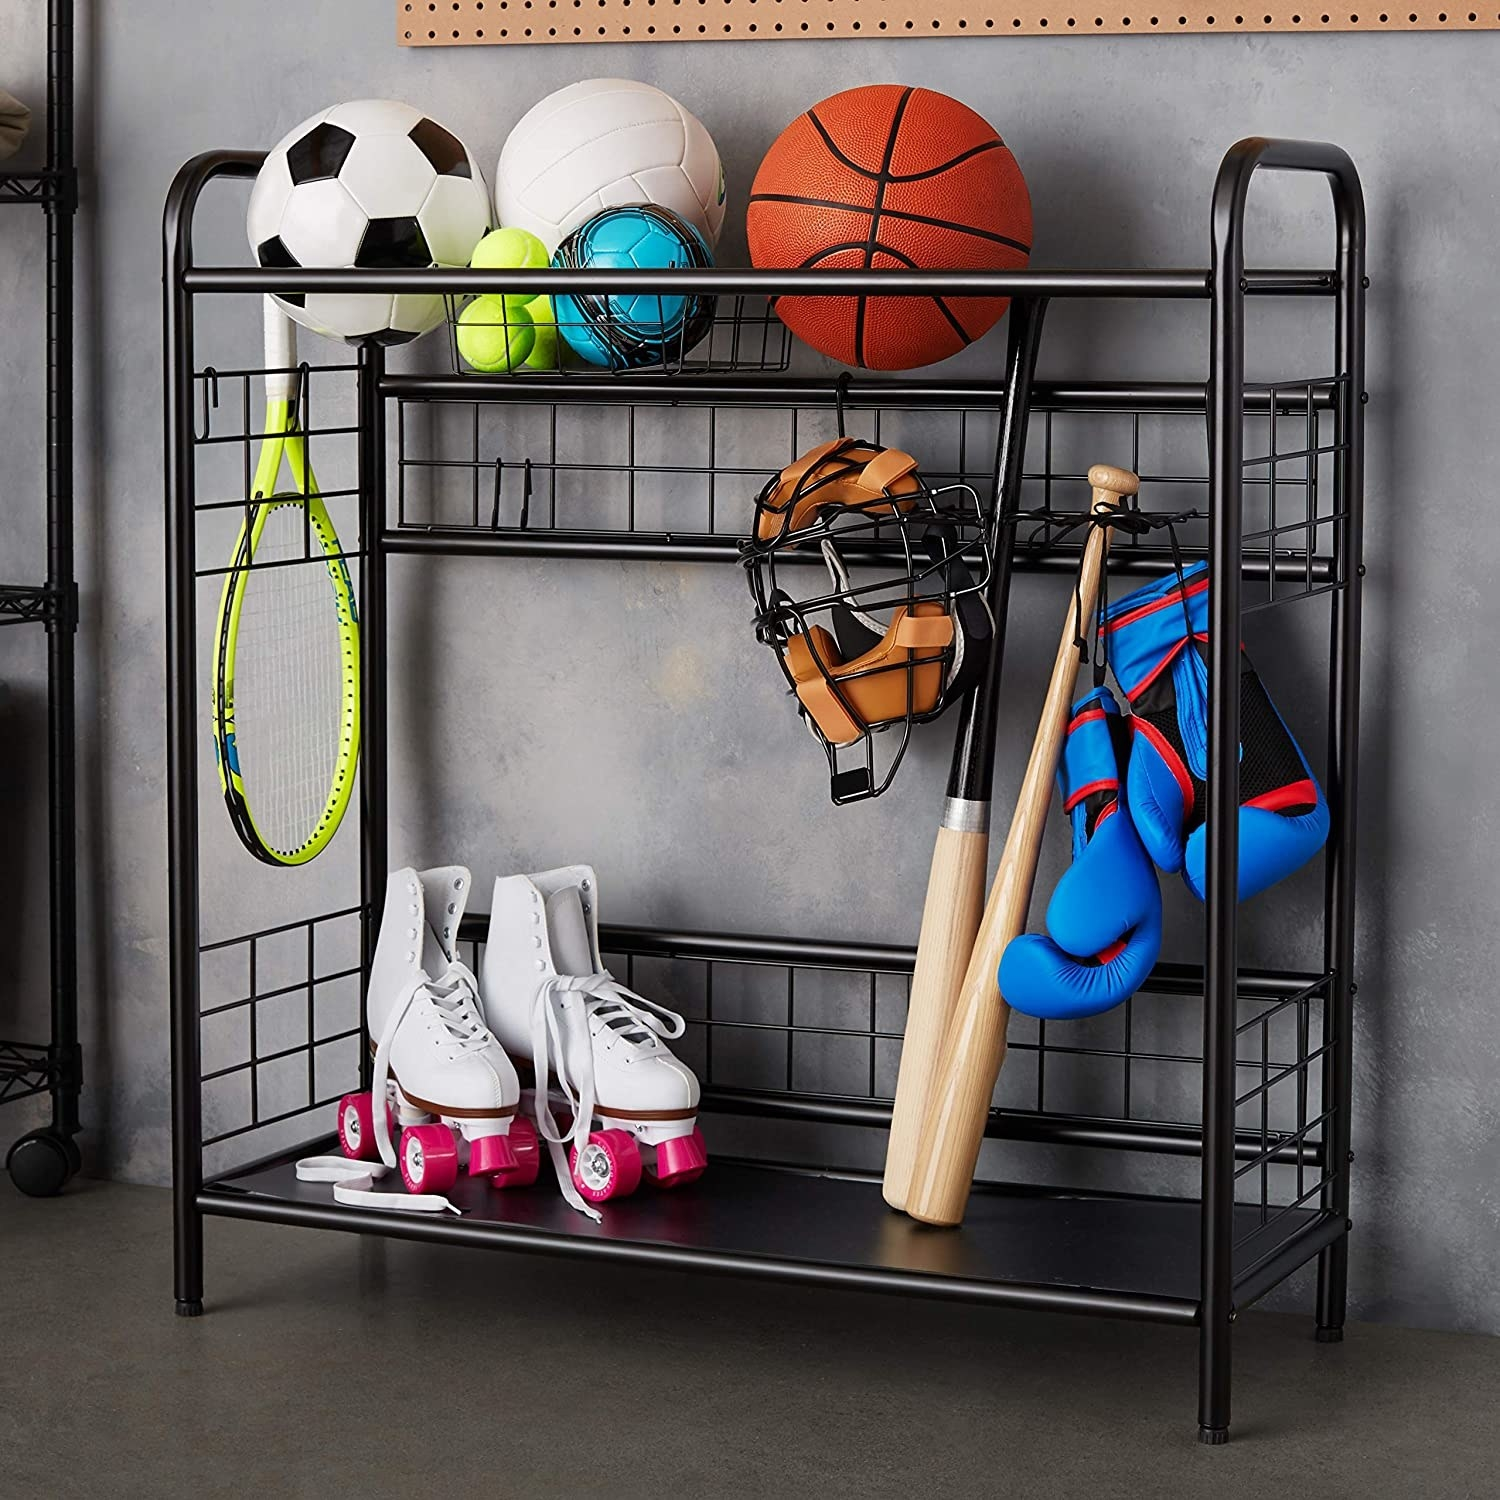 A metal rack with two shelves There are sports balls on the top rack and a pair of roller skates on the bottom